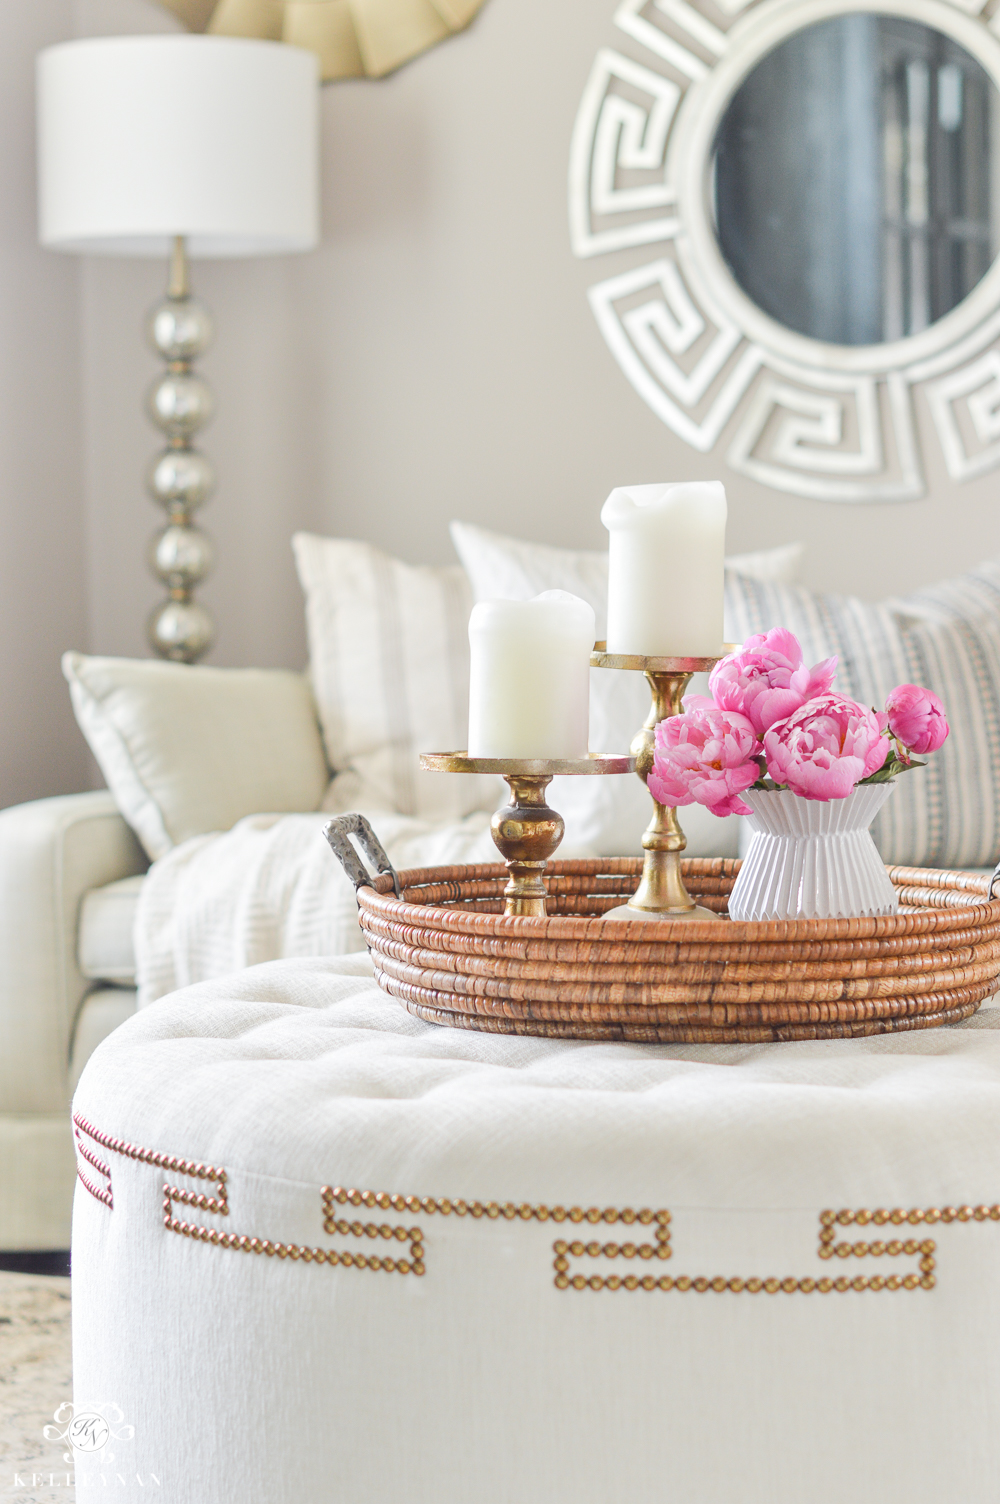 Greek key ottoman with tray and pink peonies